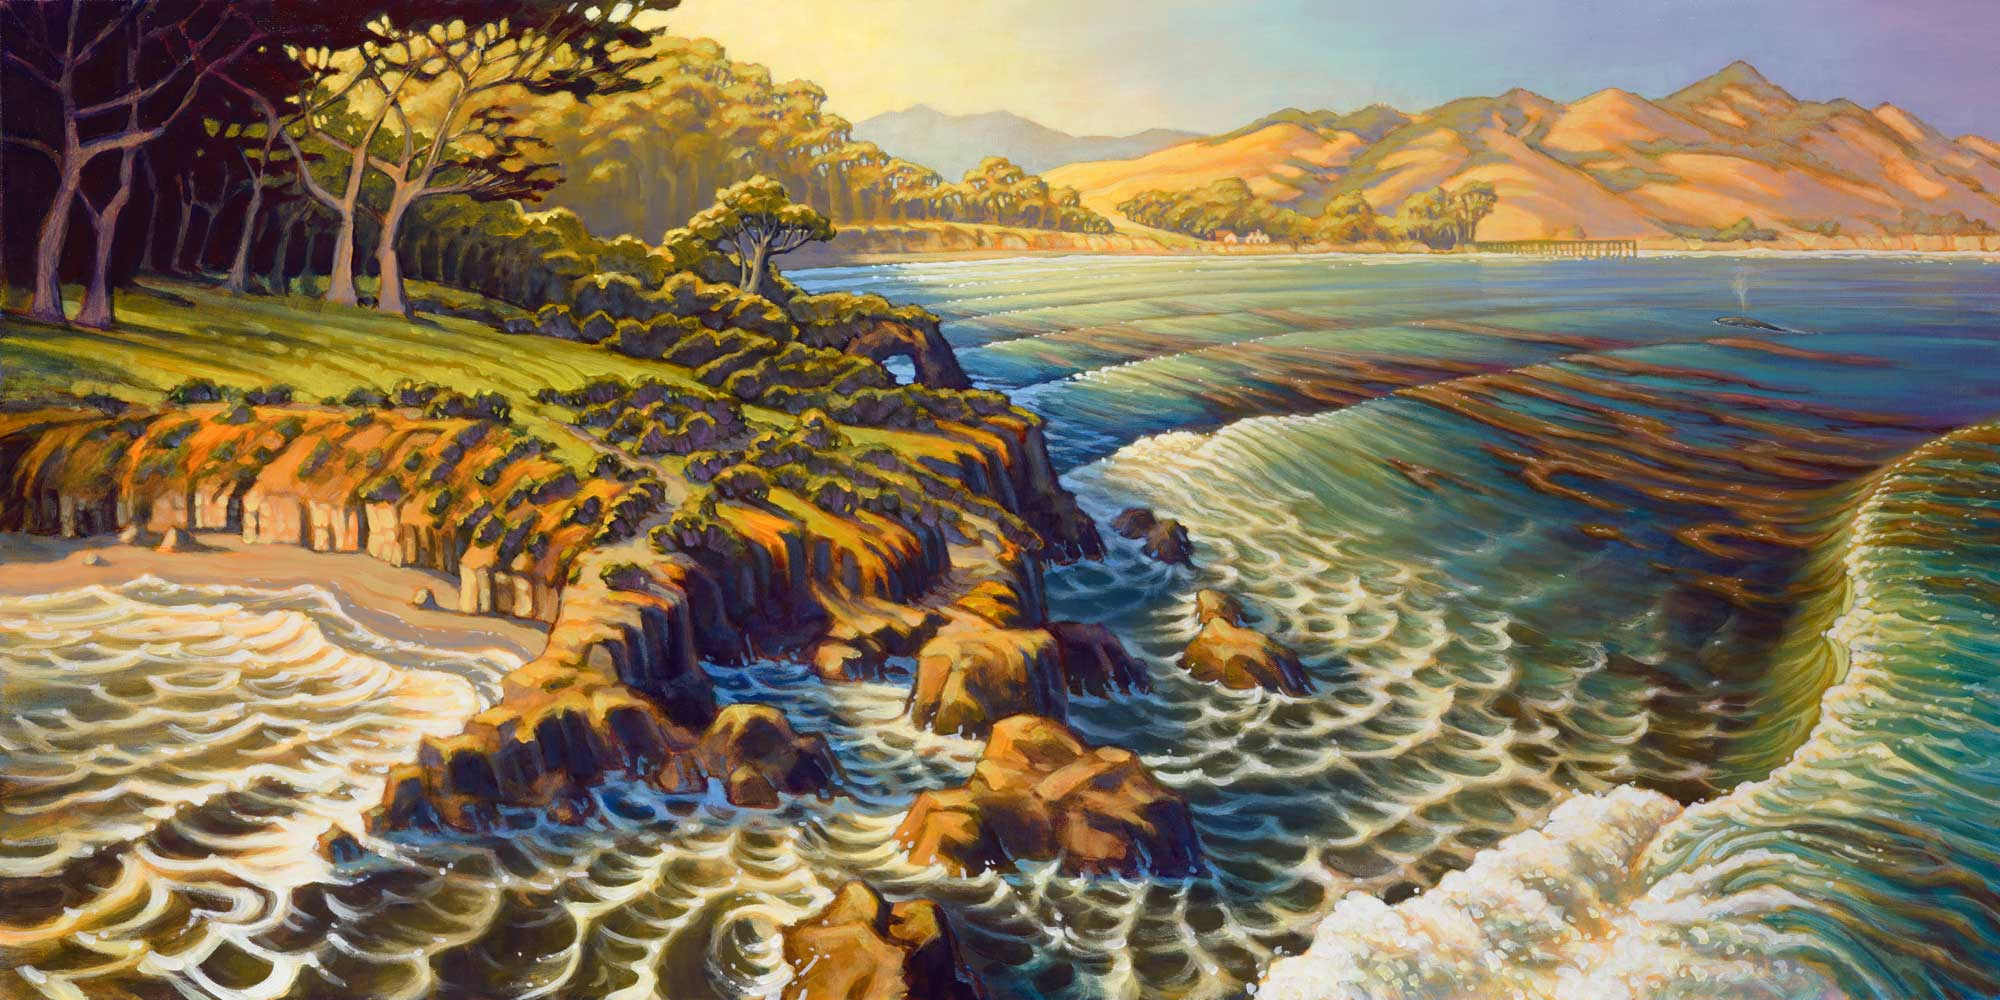 Aerial view artwork of San Simeon point and cove and Hearst Castle on the San Luis Obispo coast of California